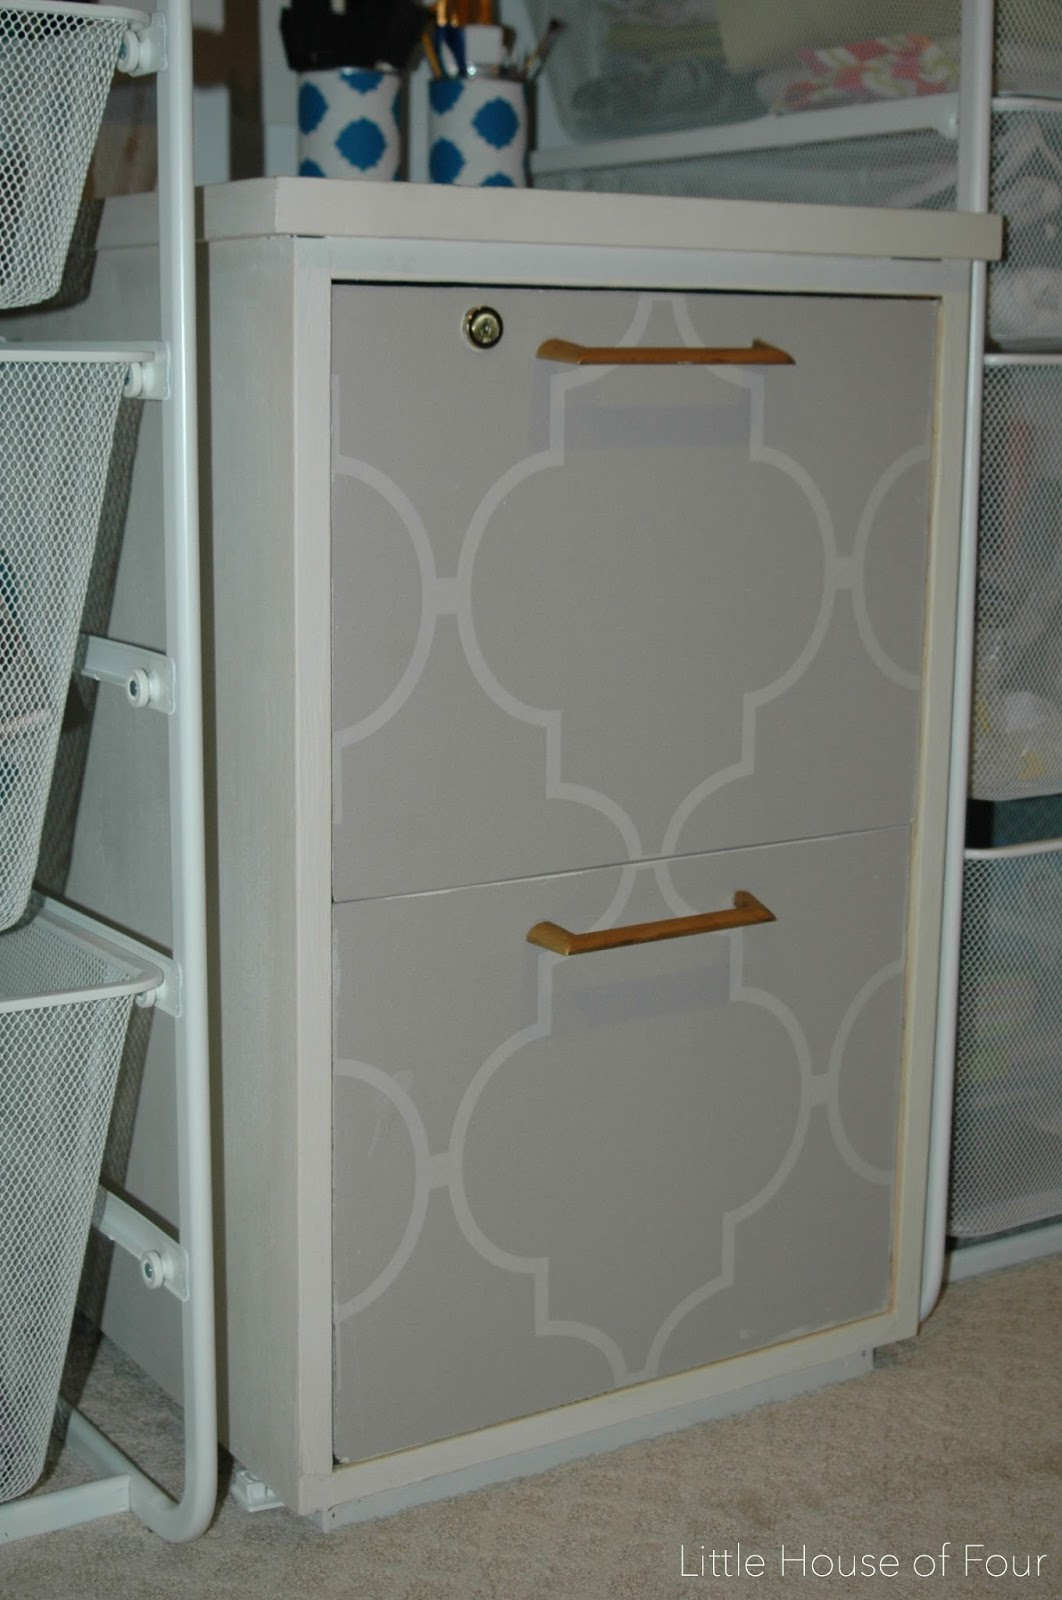 12 inexpensive upcycled projects little house of four Upcycled metal filing cabinet